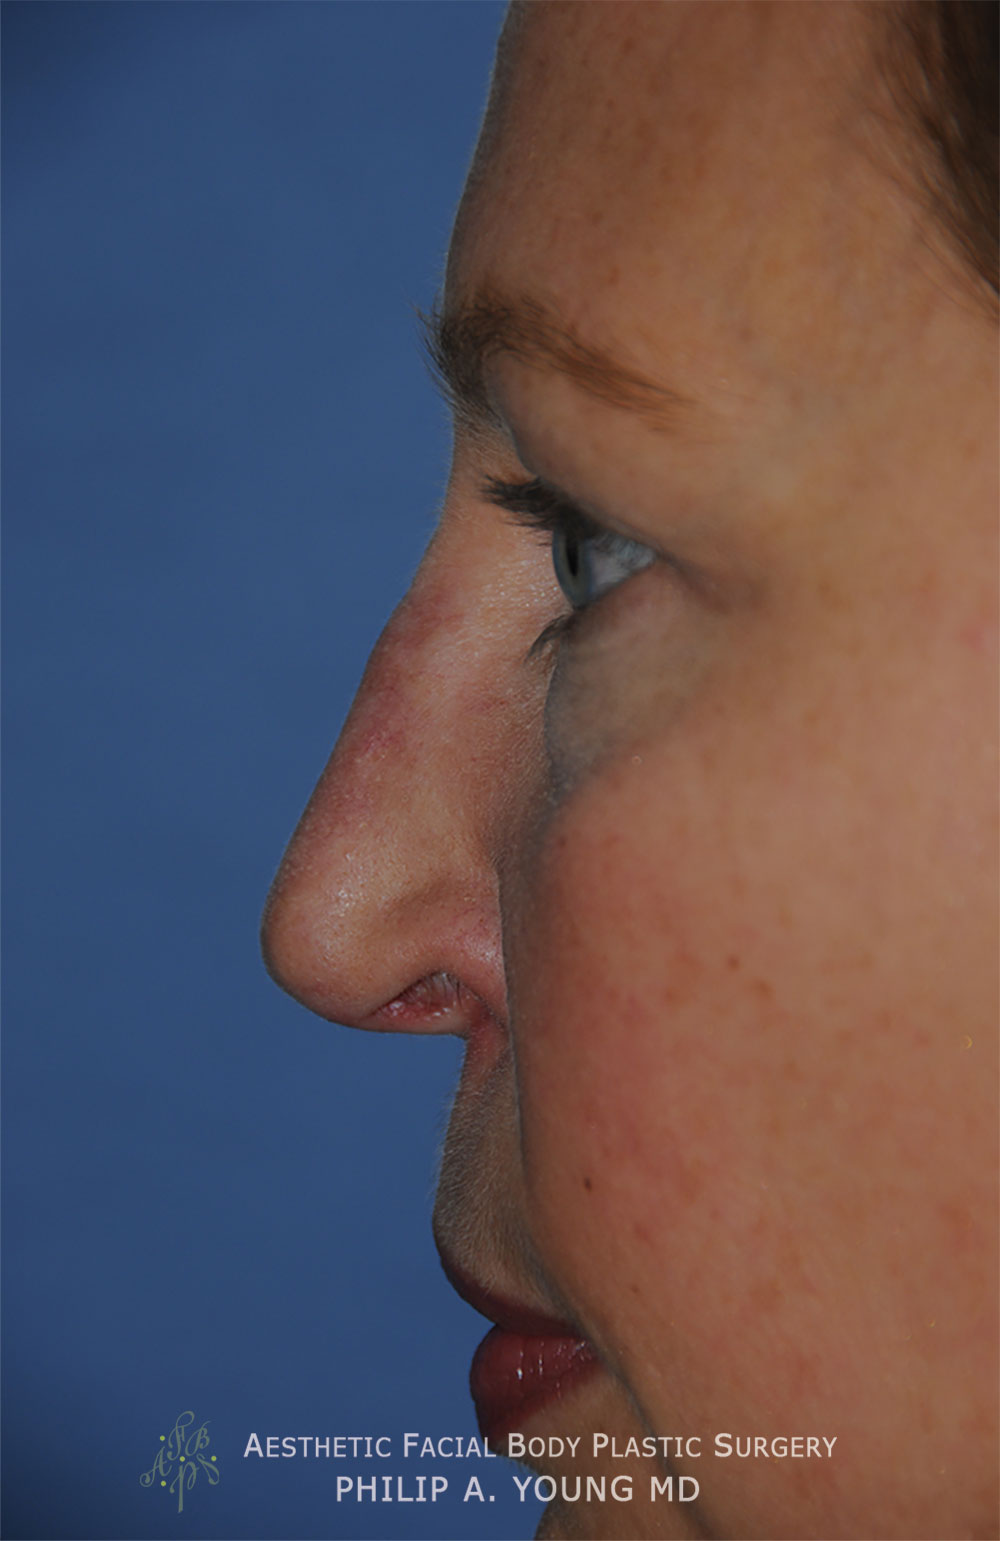 Before Revision Rhinoplasty for Crooked Tip, Crooked Nasal Bridge, Nose Bridge Dorsal Irregularities, Hook & Droopy Nasal Tip, Retracted Alae Nostrils Left Side Close Up View.